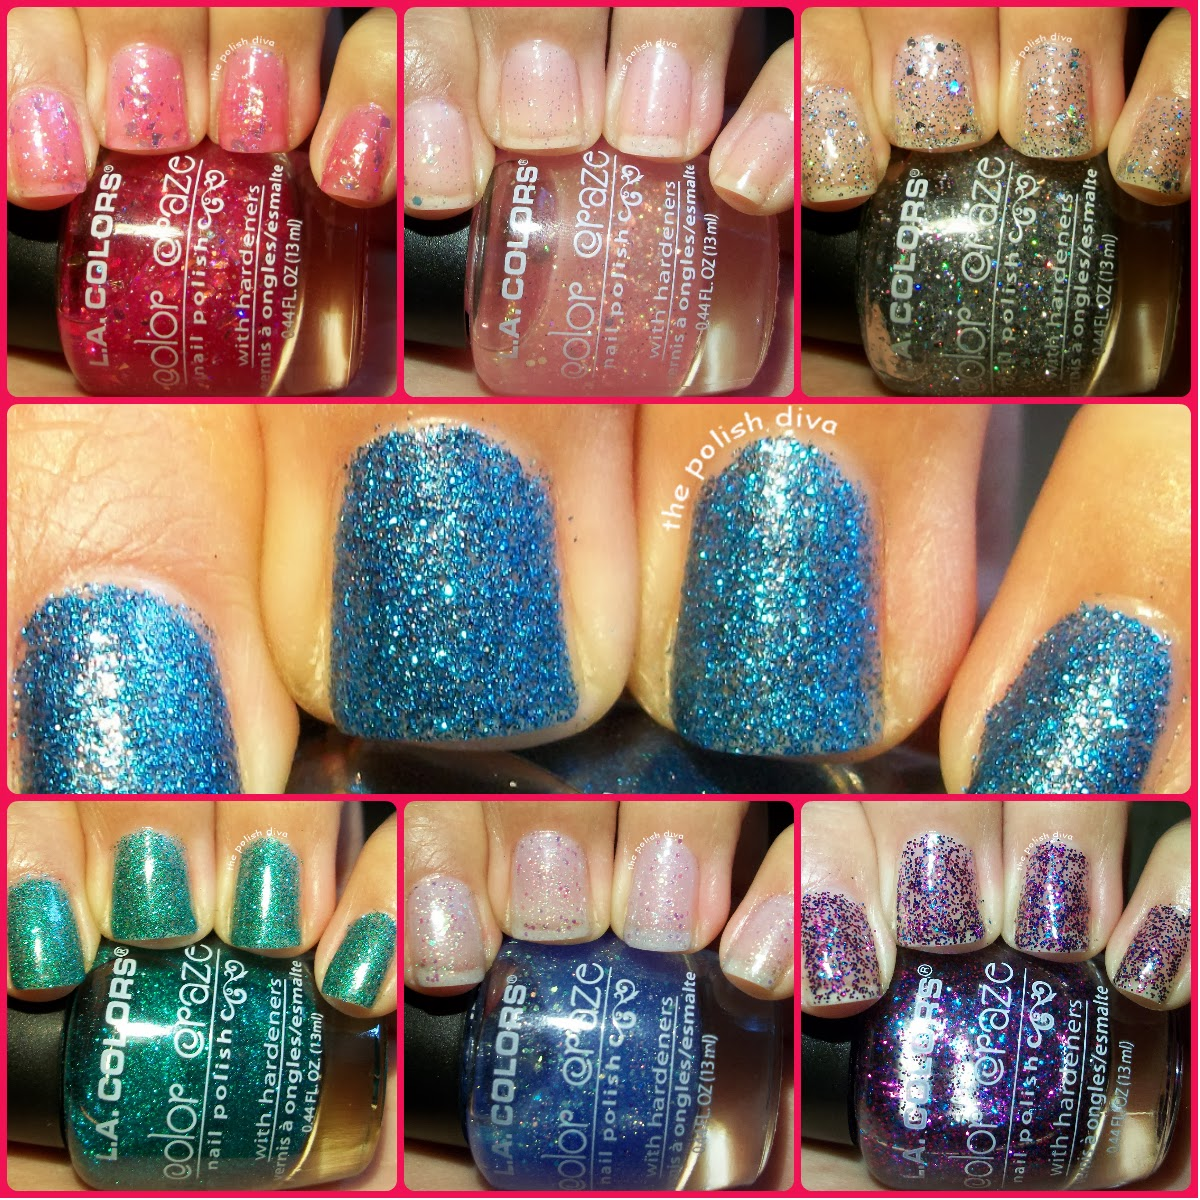 The Polish Diva: LA Colors Swatches and Review, Part 2 (100th Post!)